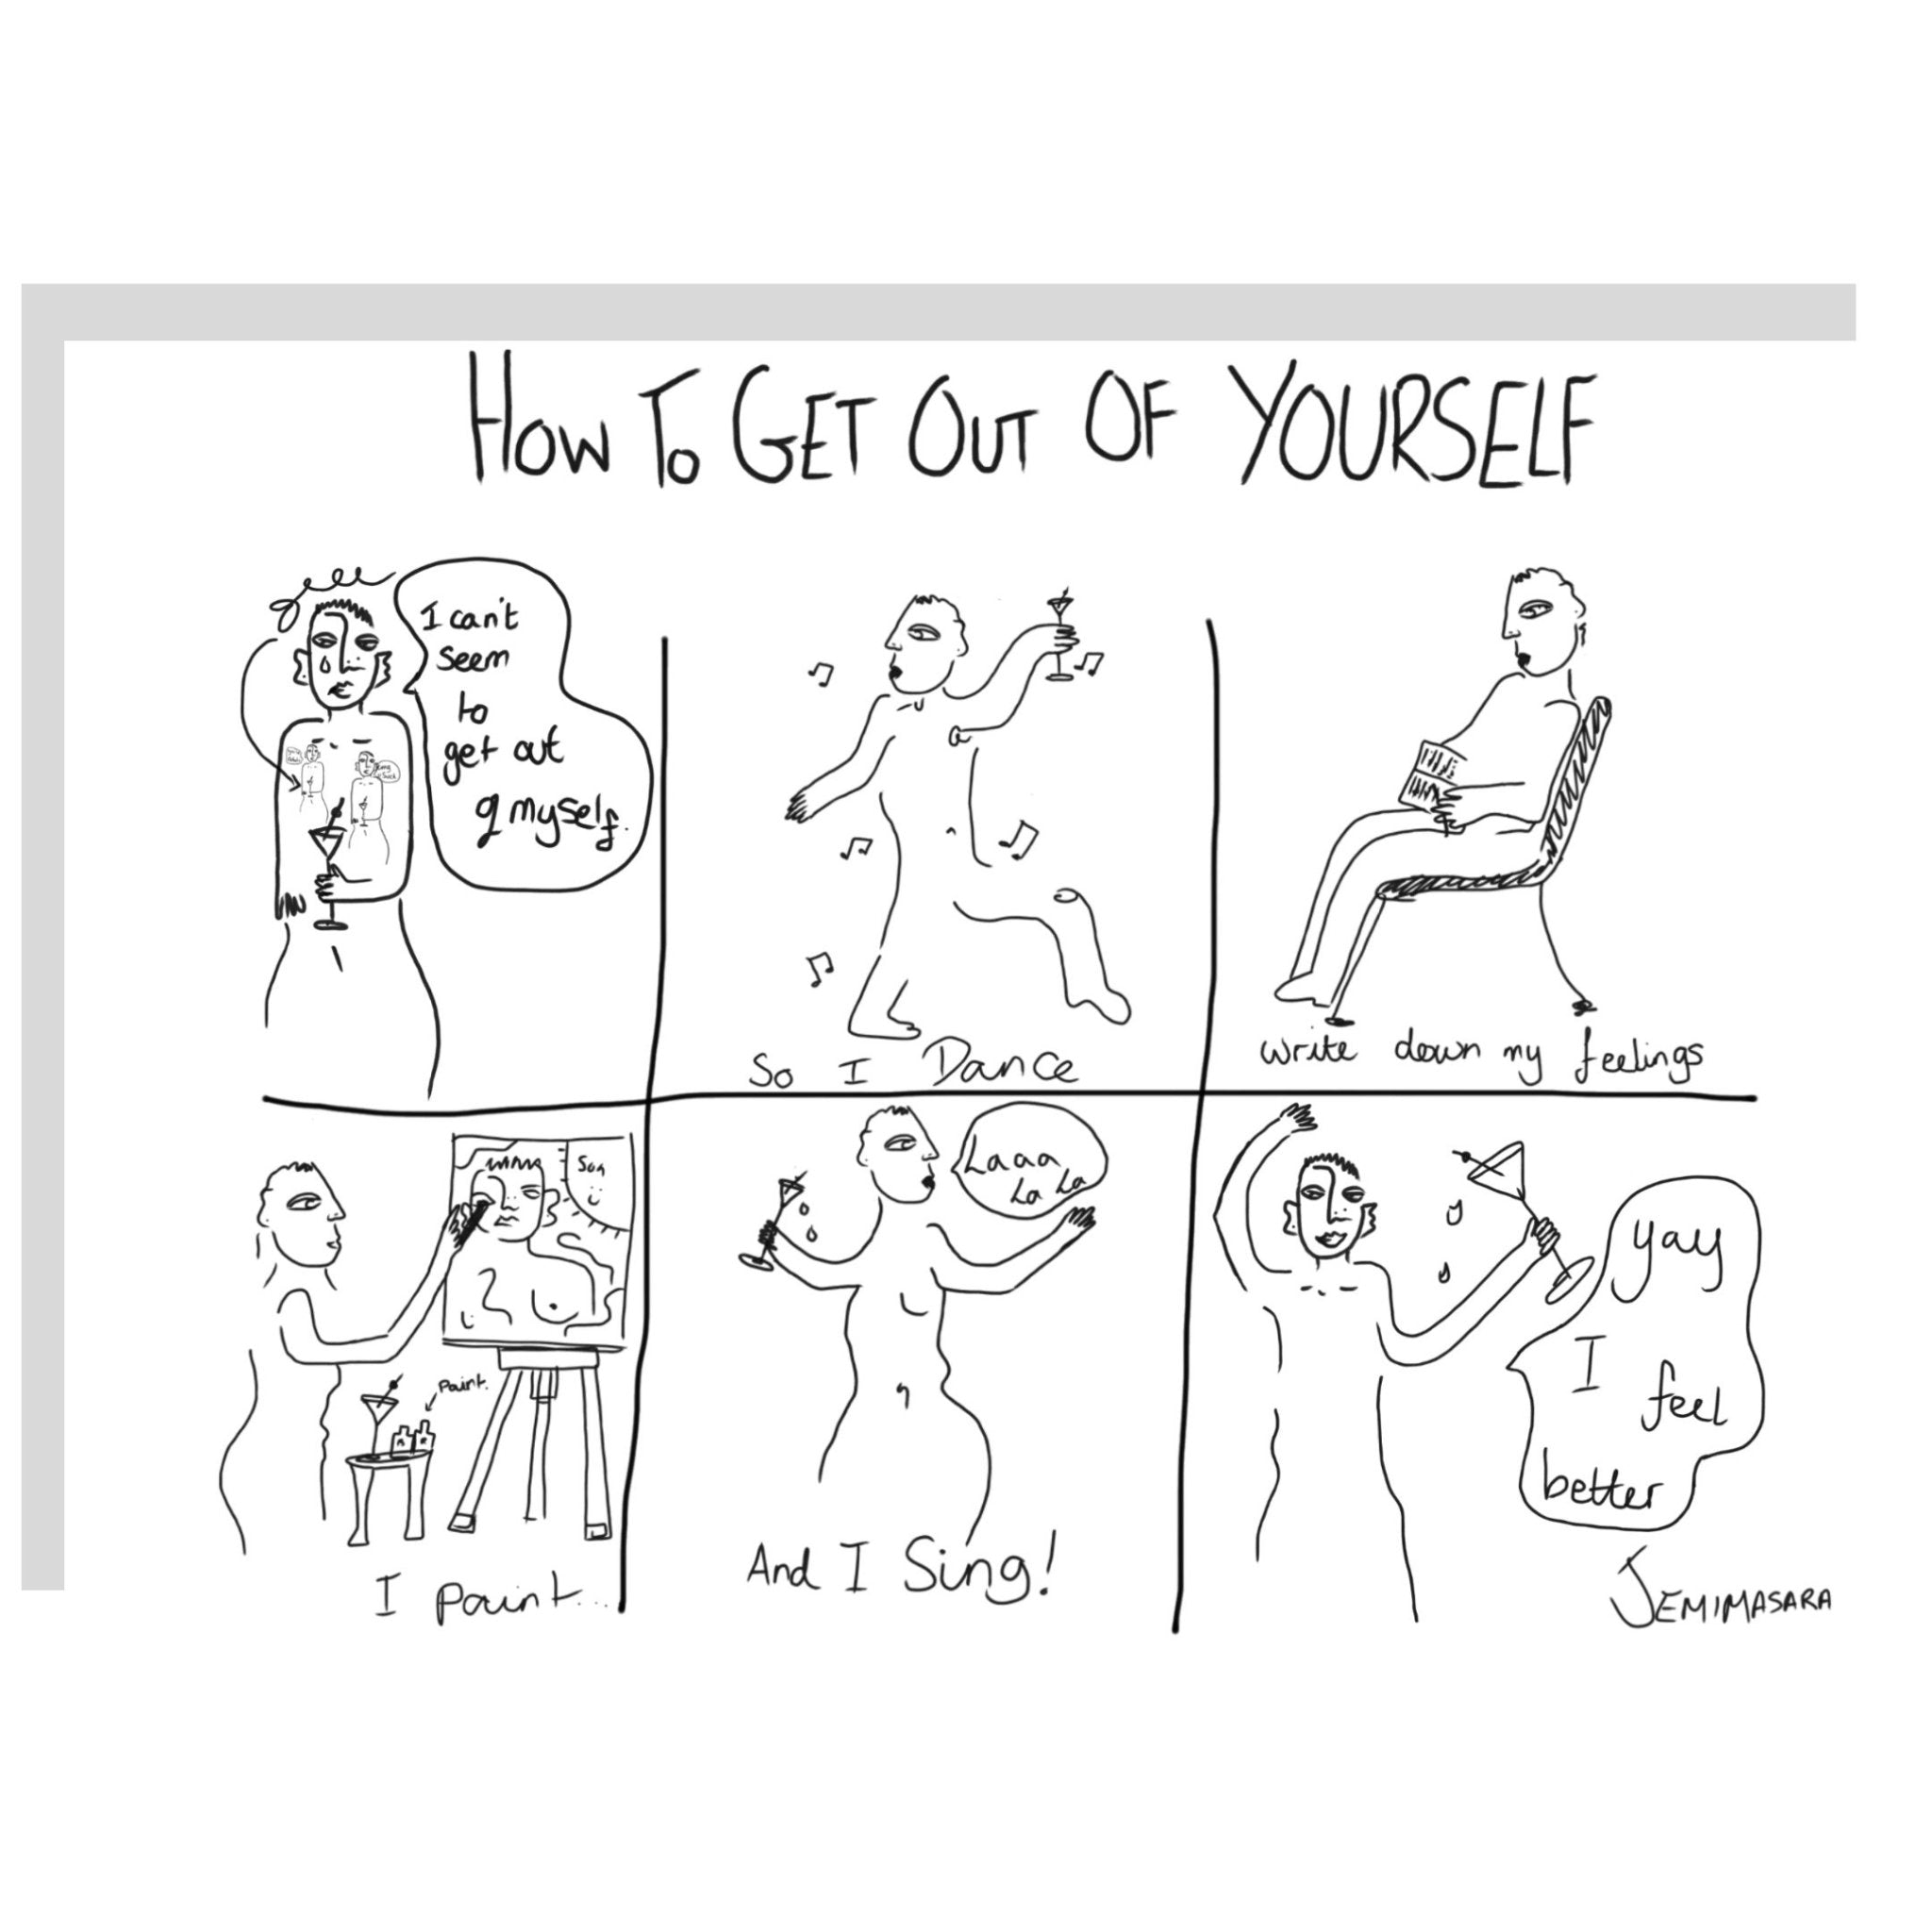 How To Get Out Of Yourself Print - The Clothing LoungeJEMIMASARA